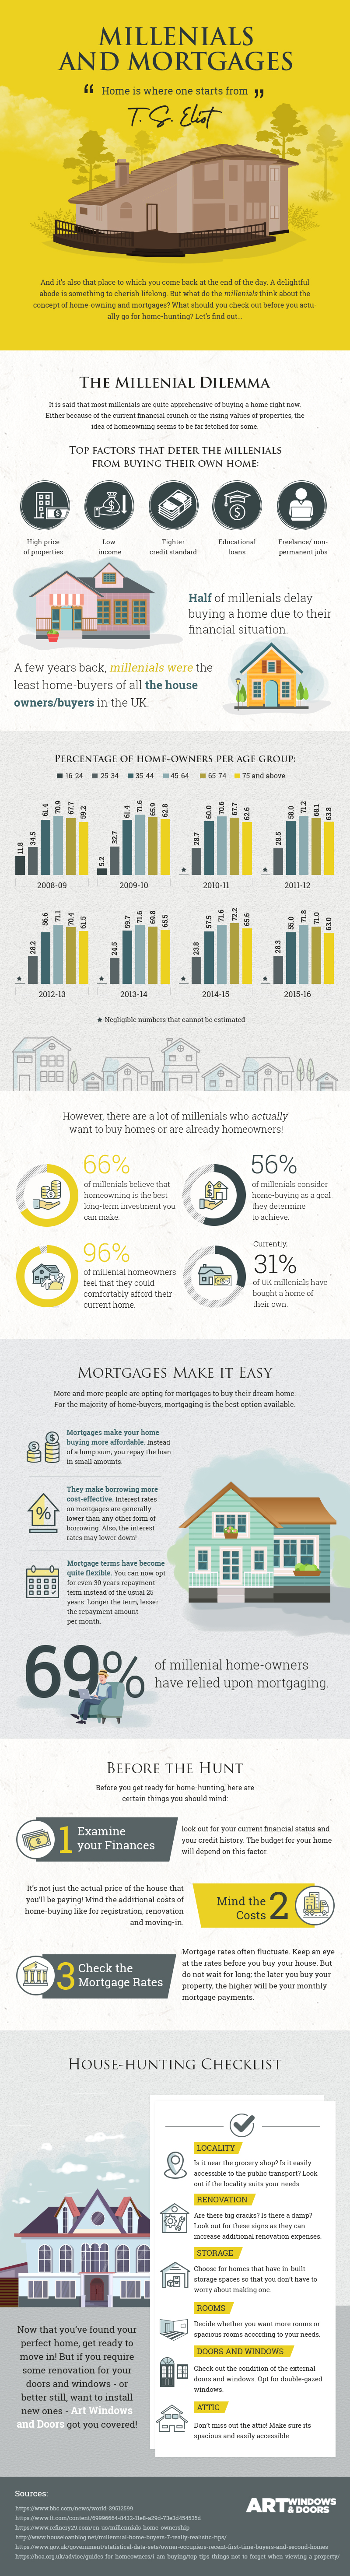 Millenials and mortgages